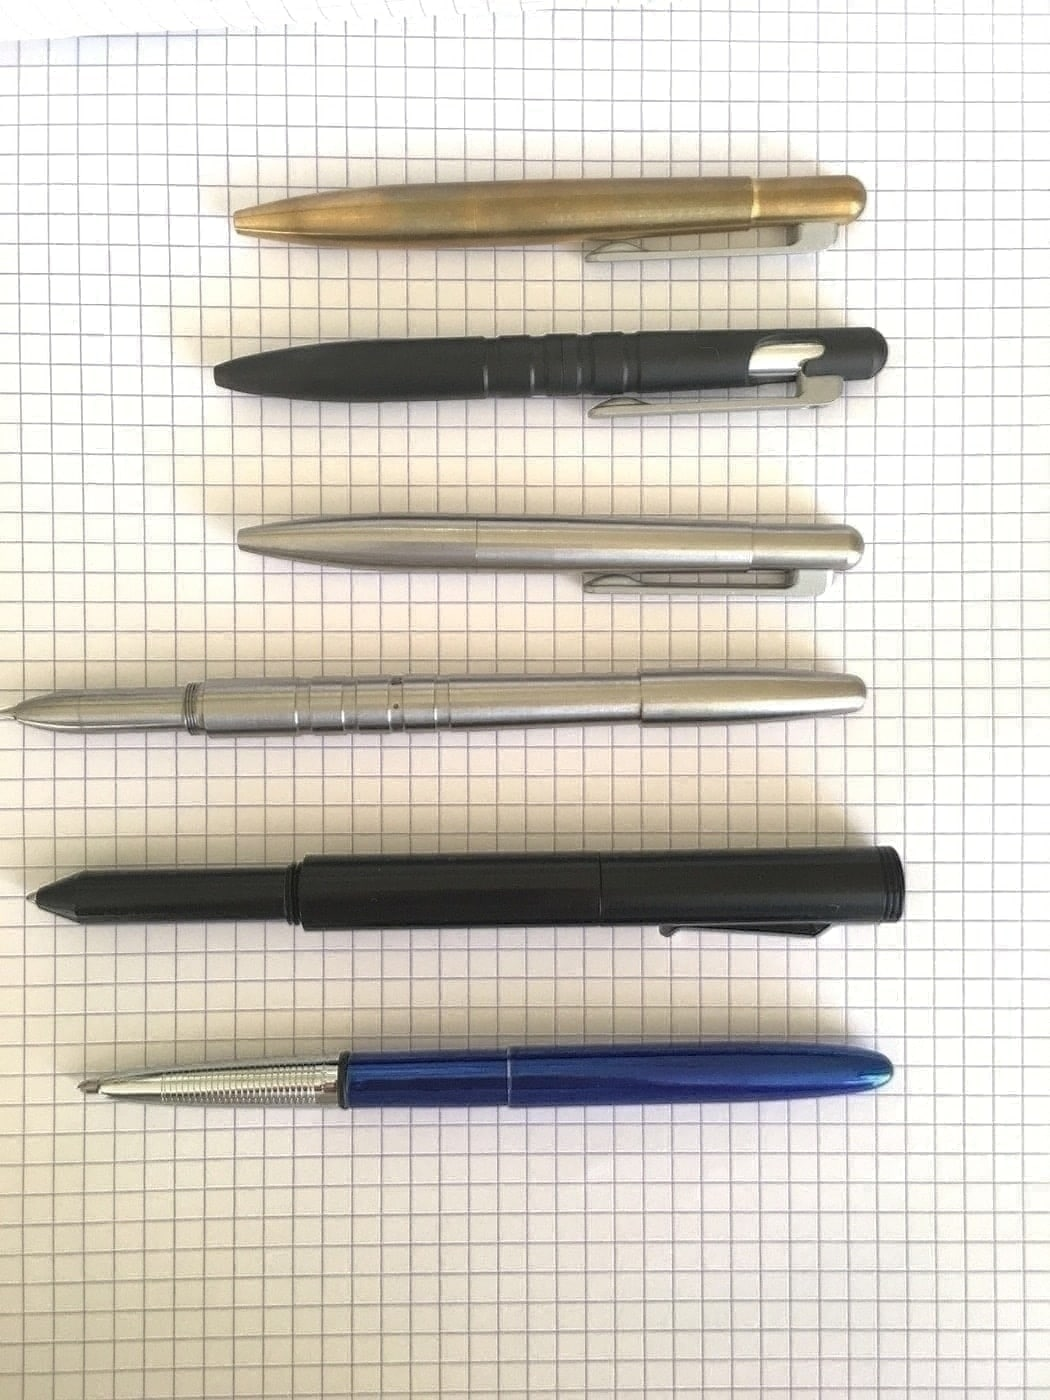 Top to Bottom: Brass Field Pen Compact, Field Pen, Stainless Field Pen Compact, Machine Era Co Pen, Schon DSGN Pen, Fisher Bullet